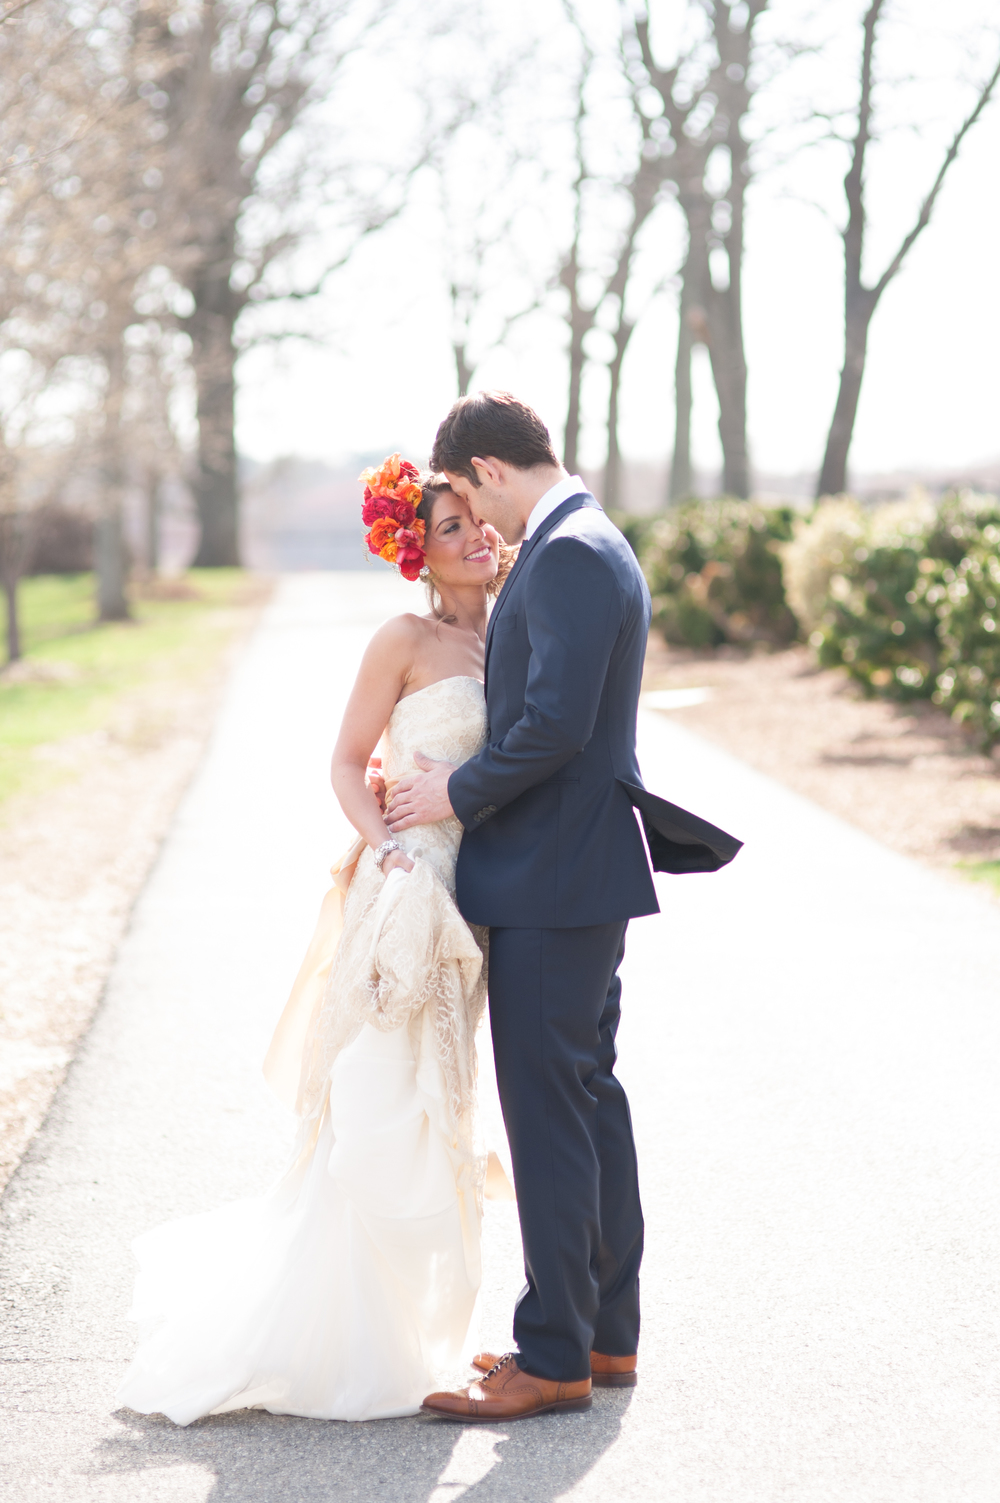 Vibrant Romantic Dutch Wedding at Woodlawn Manor-48.jpg